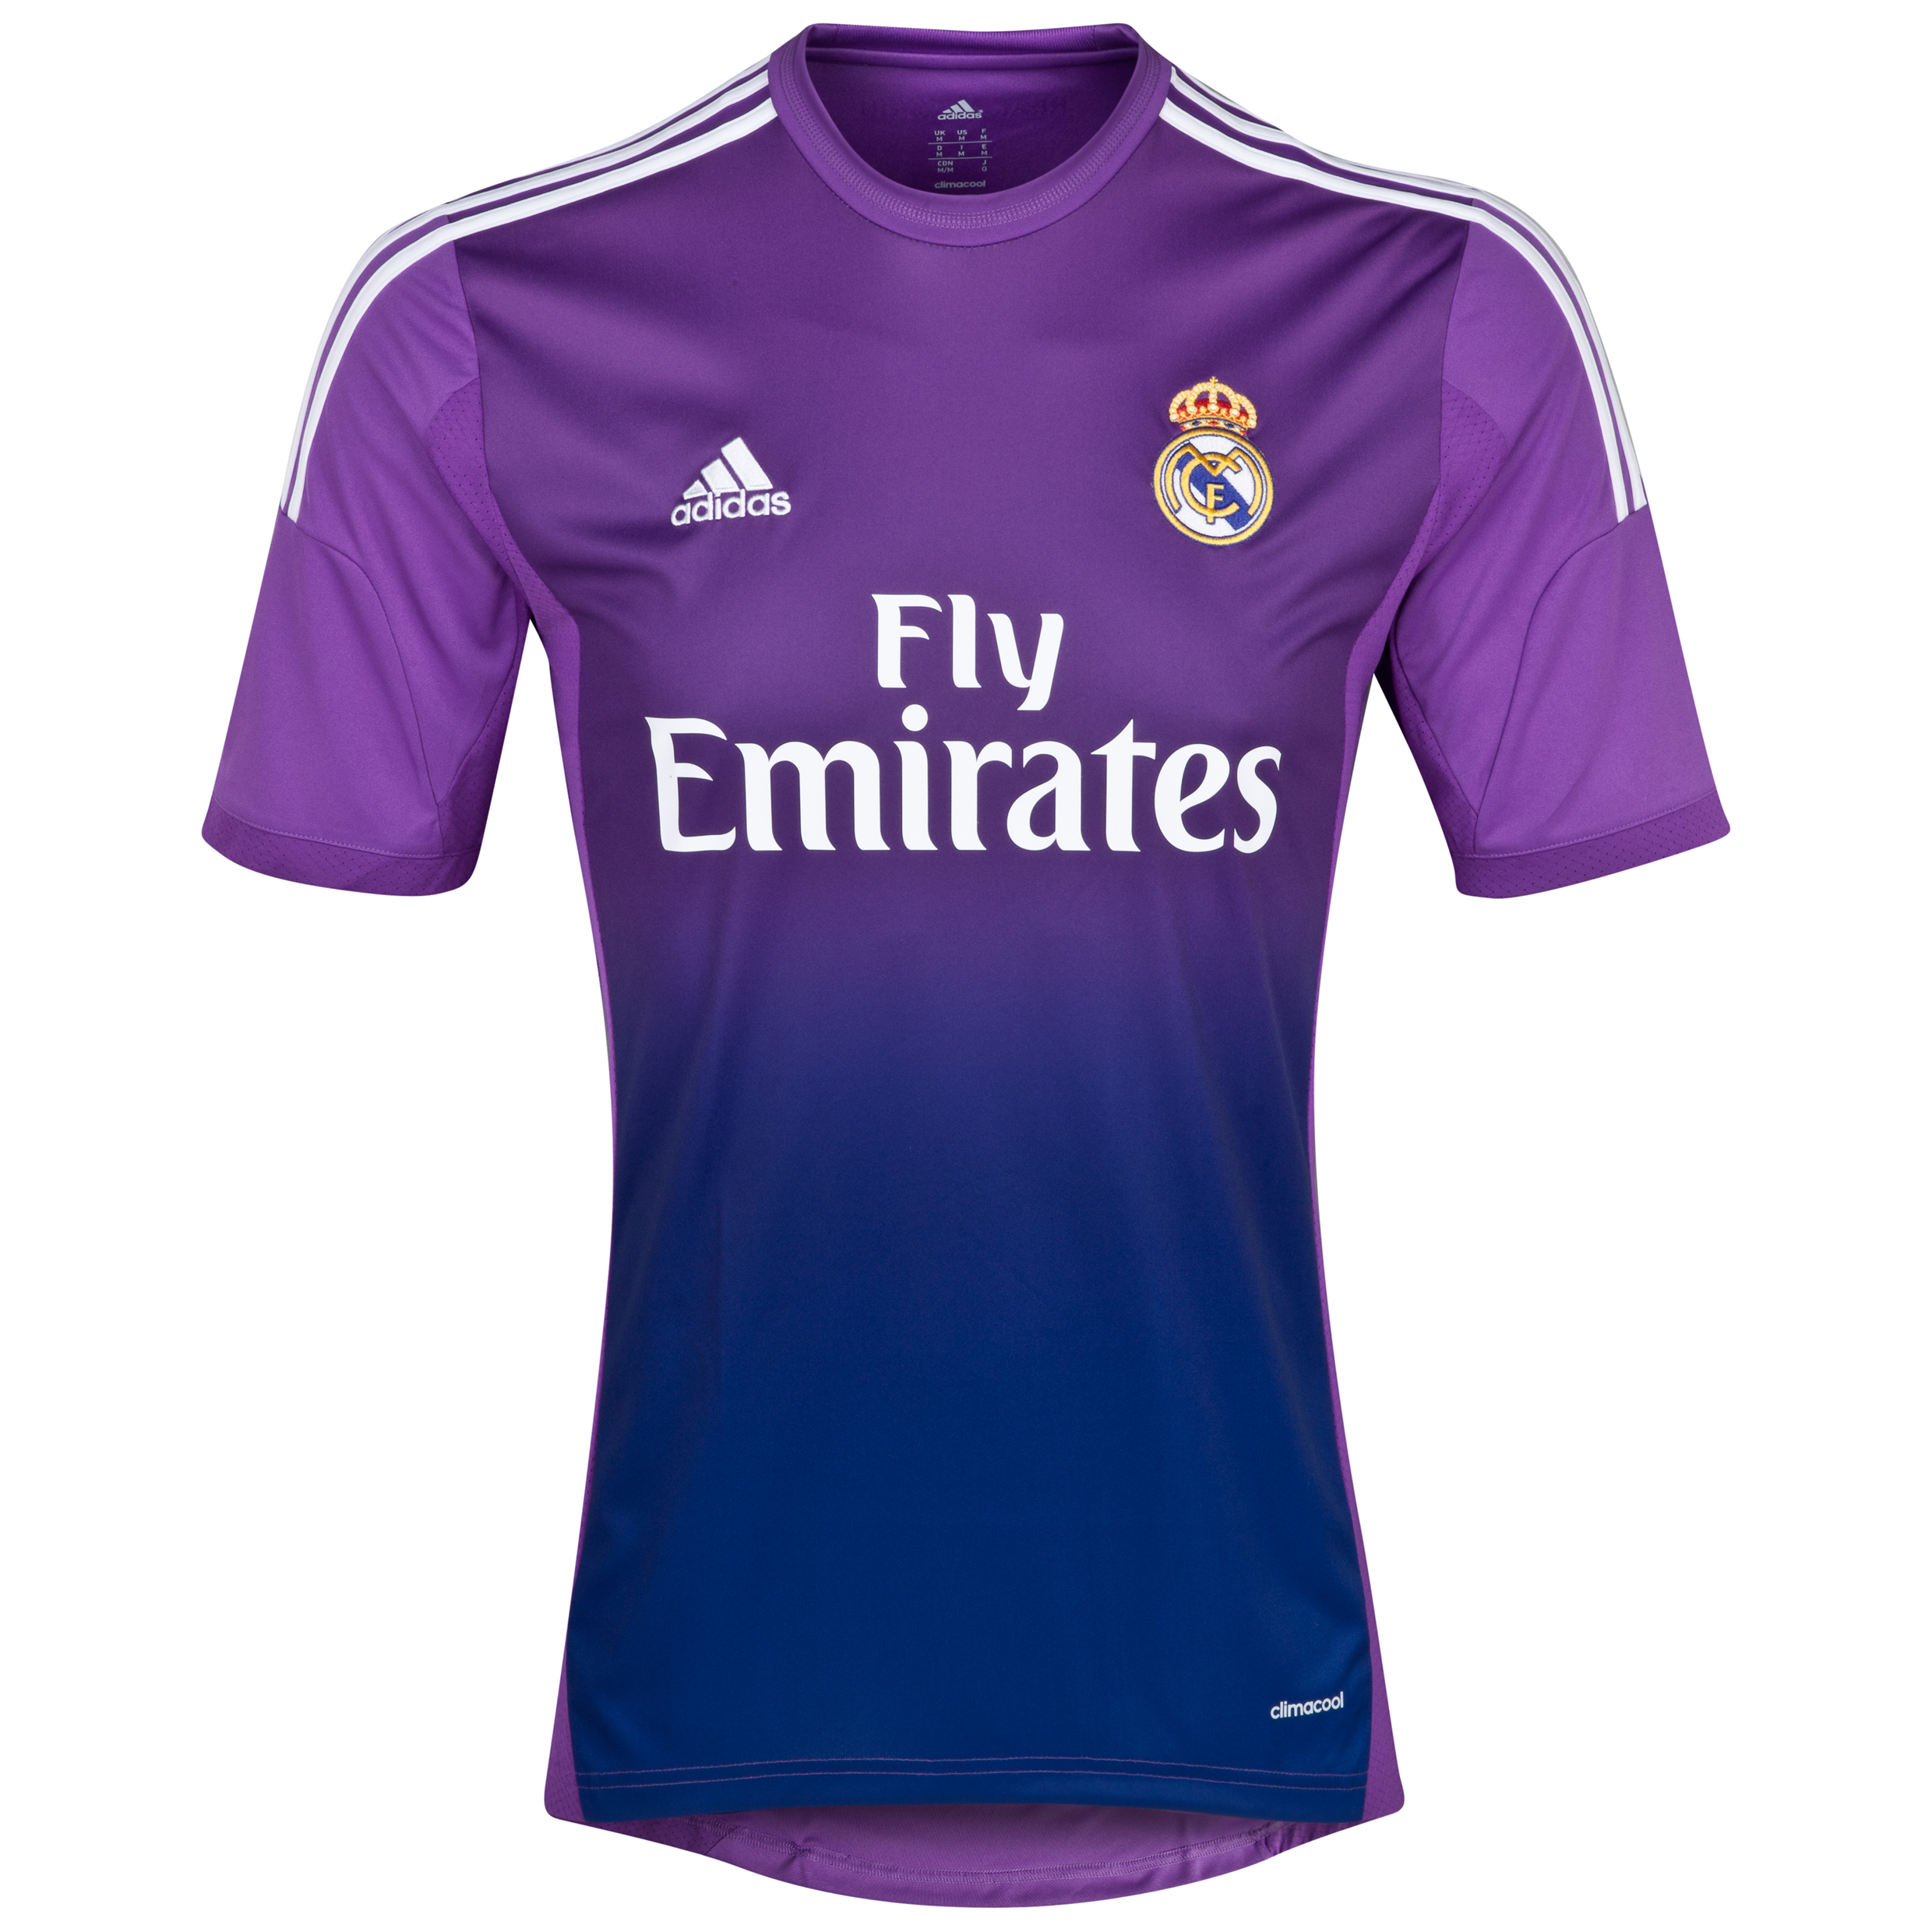 Buy Real Madrid Home Goalkeeper Kit 2013/14